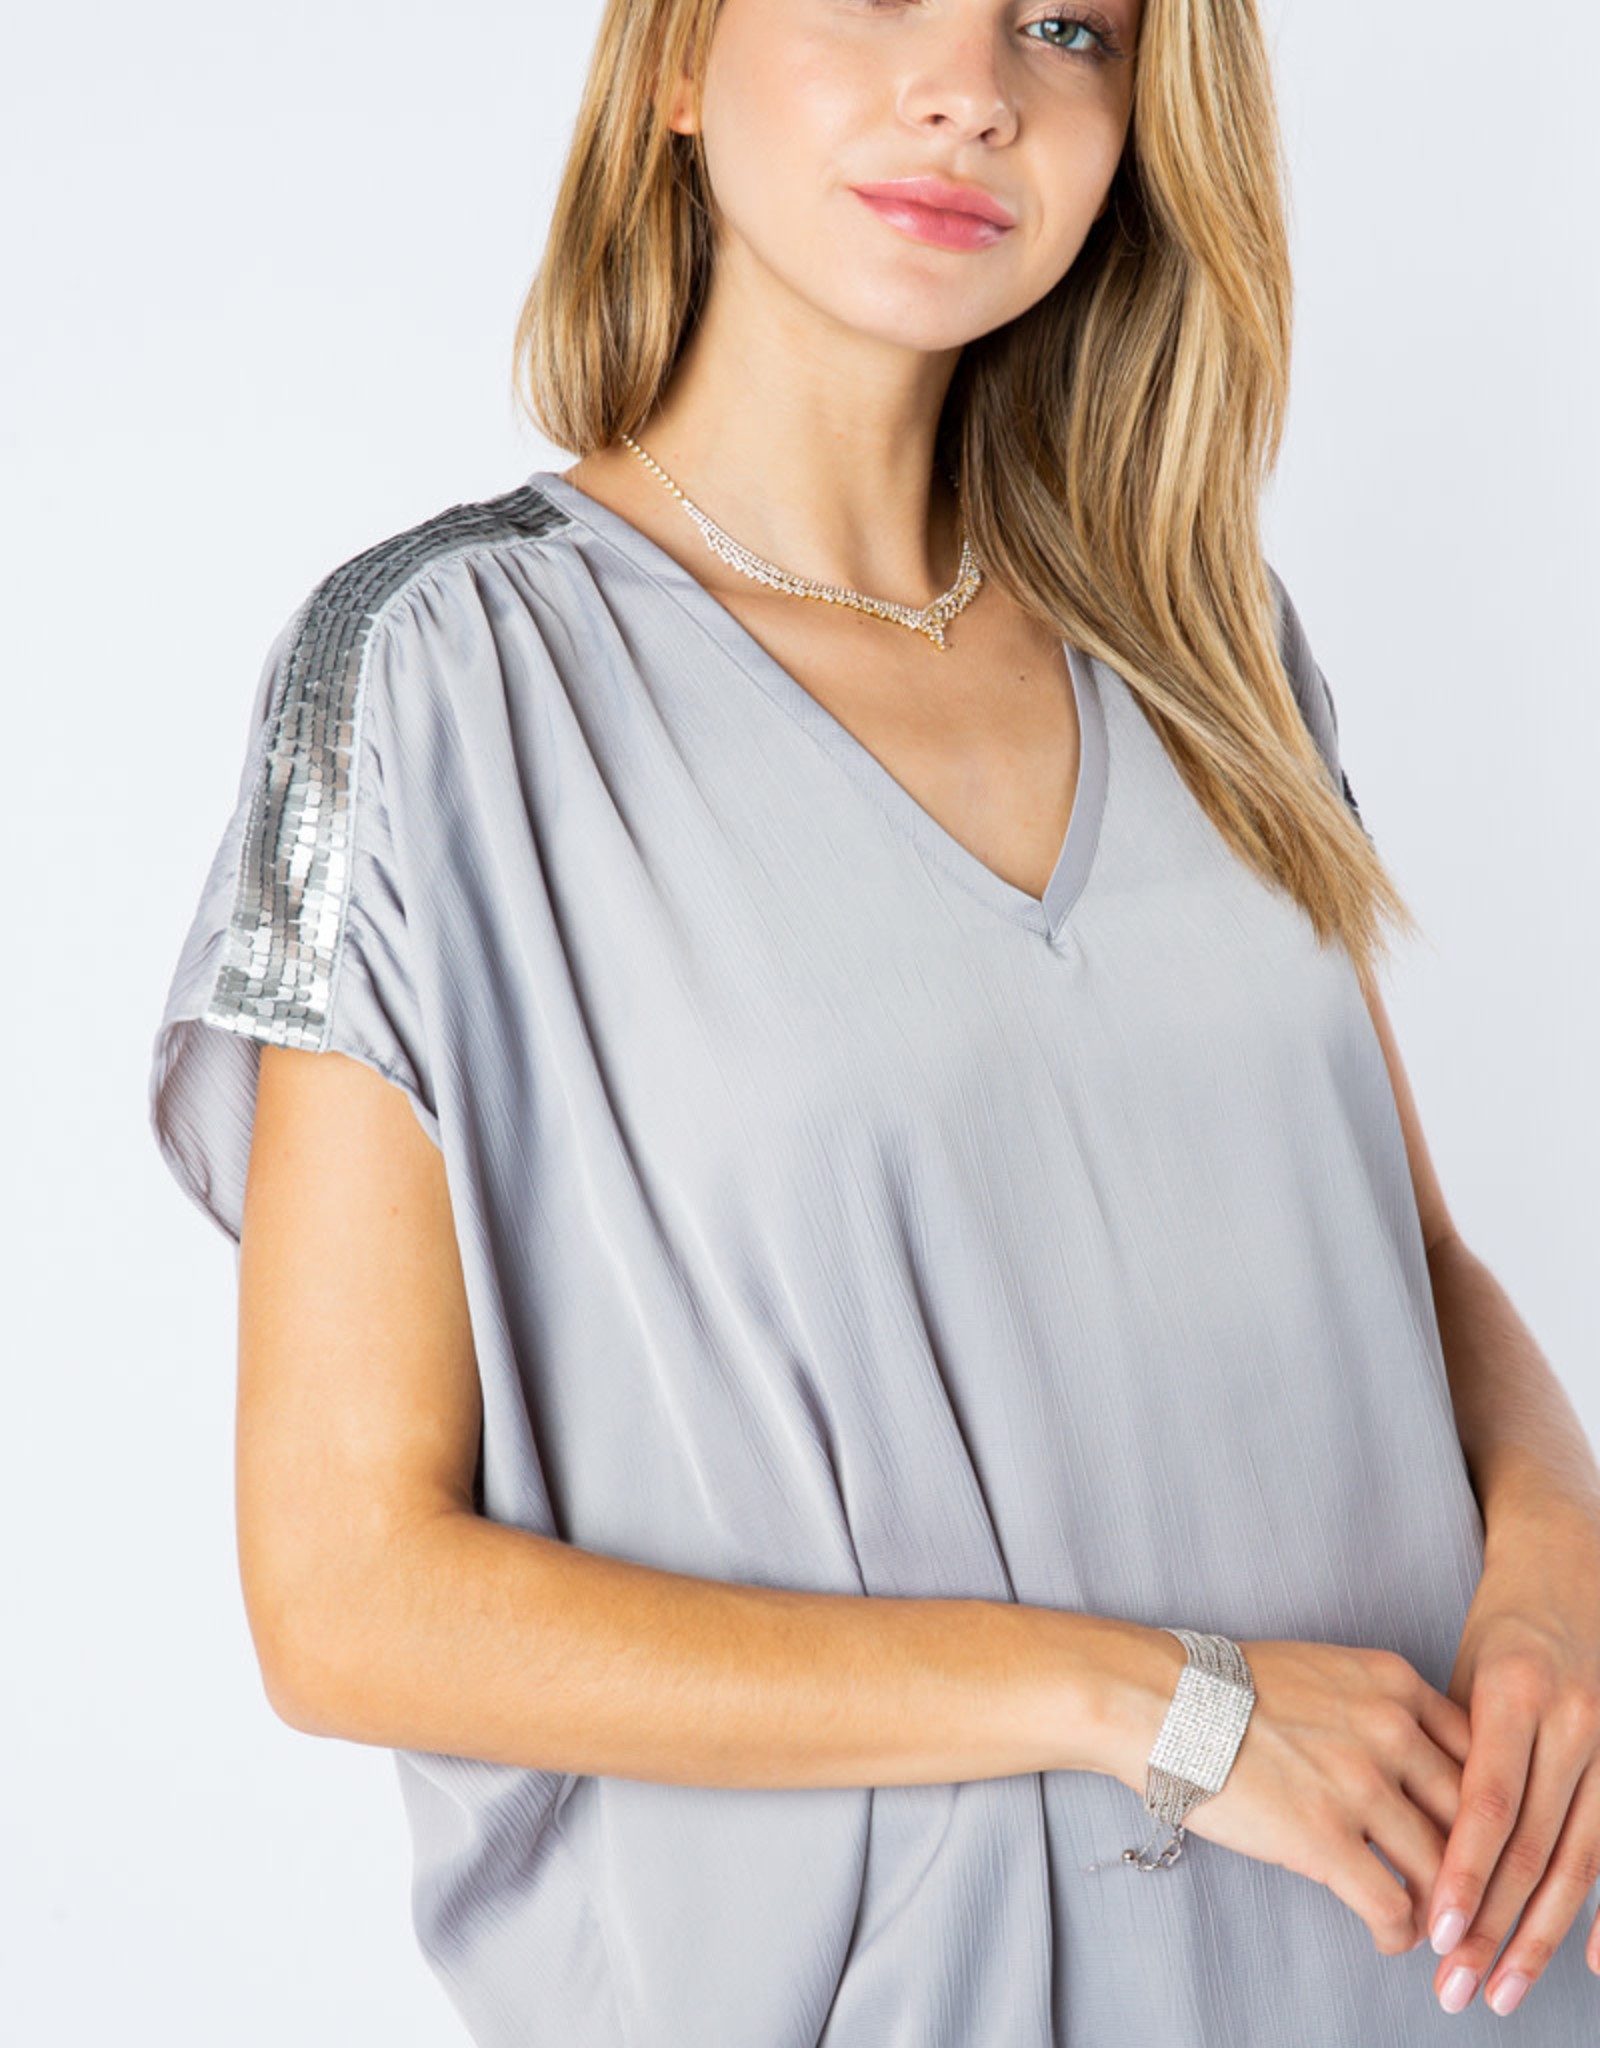 Vocal 6171 Satin Vneck Bejeweled Shoulder Blouse